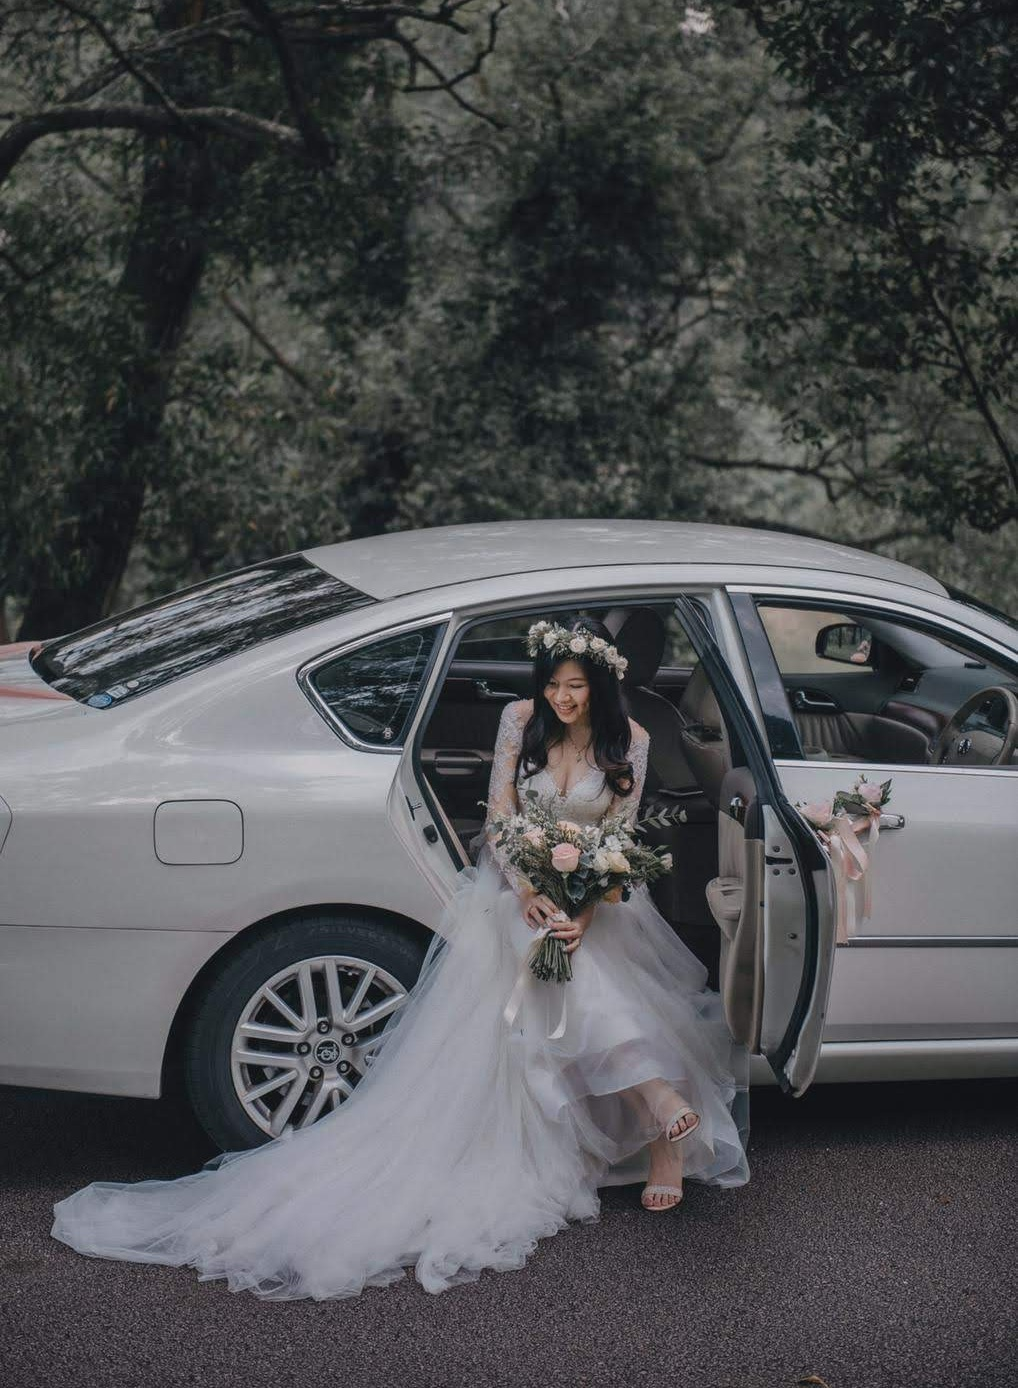 Leslie+photog_bride+%26+car+.jpg